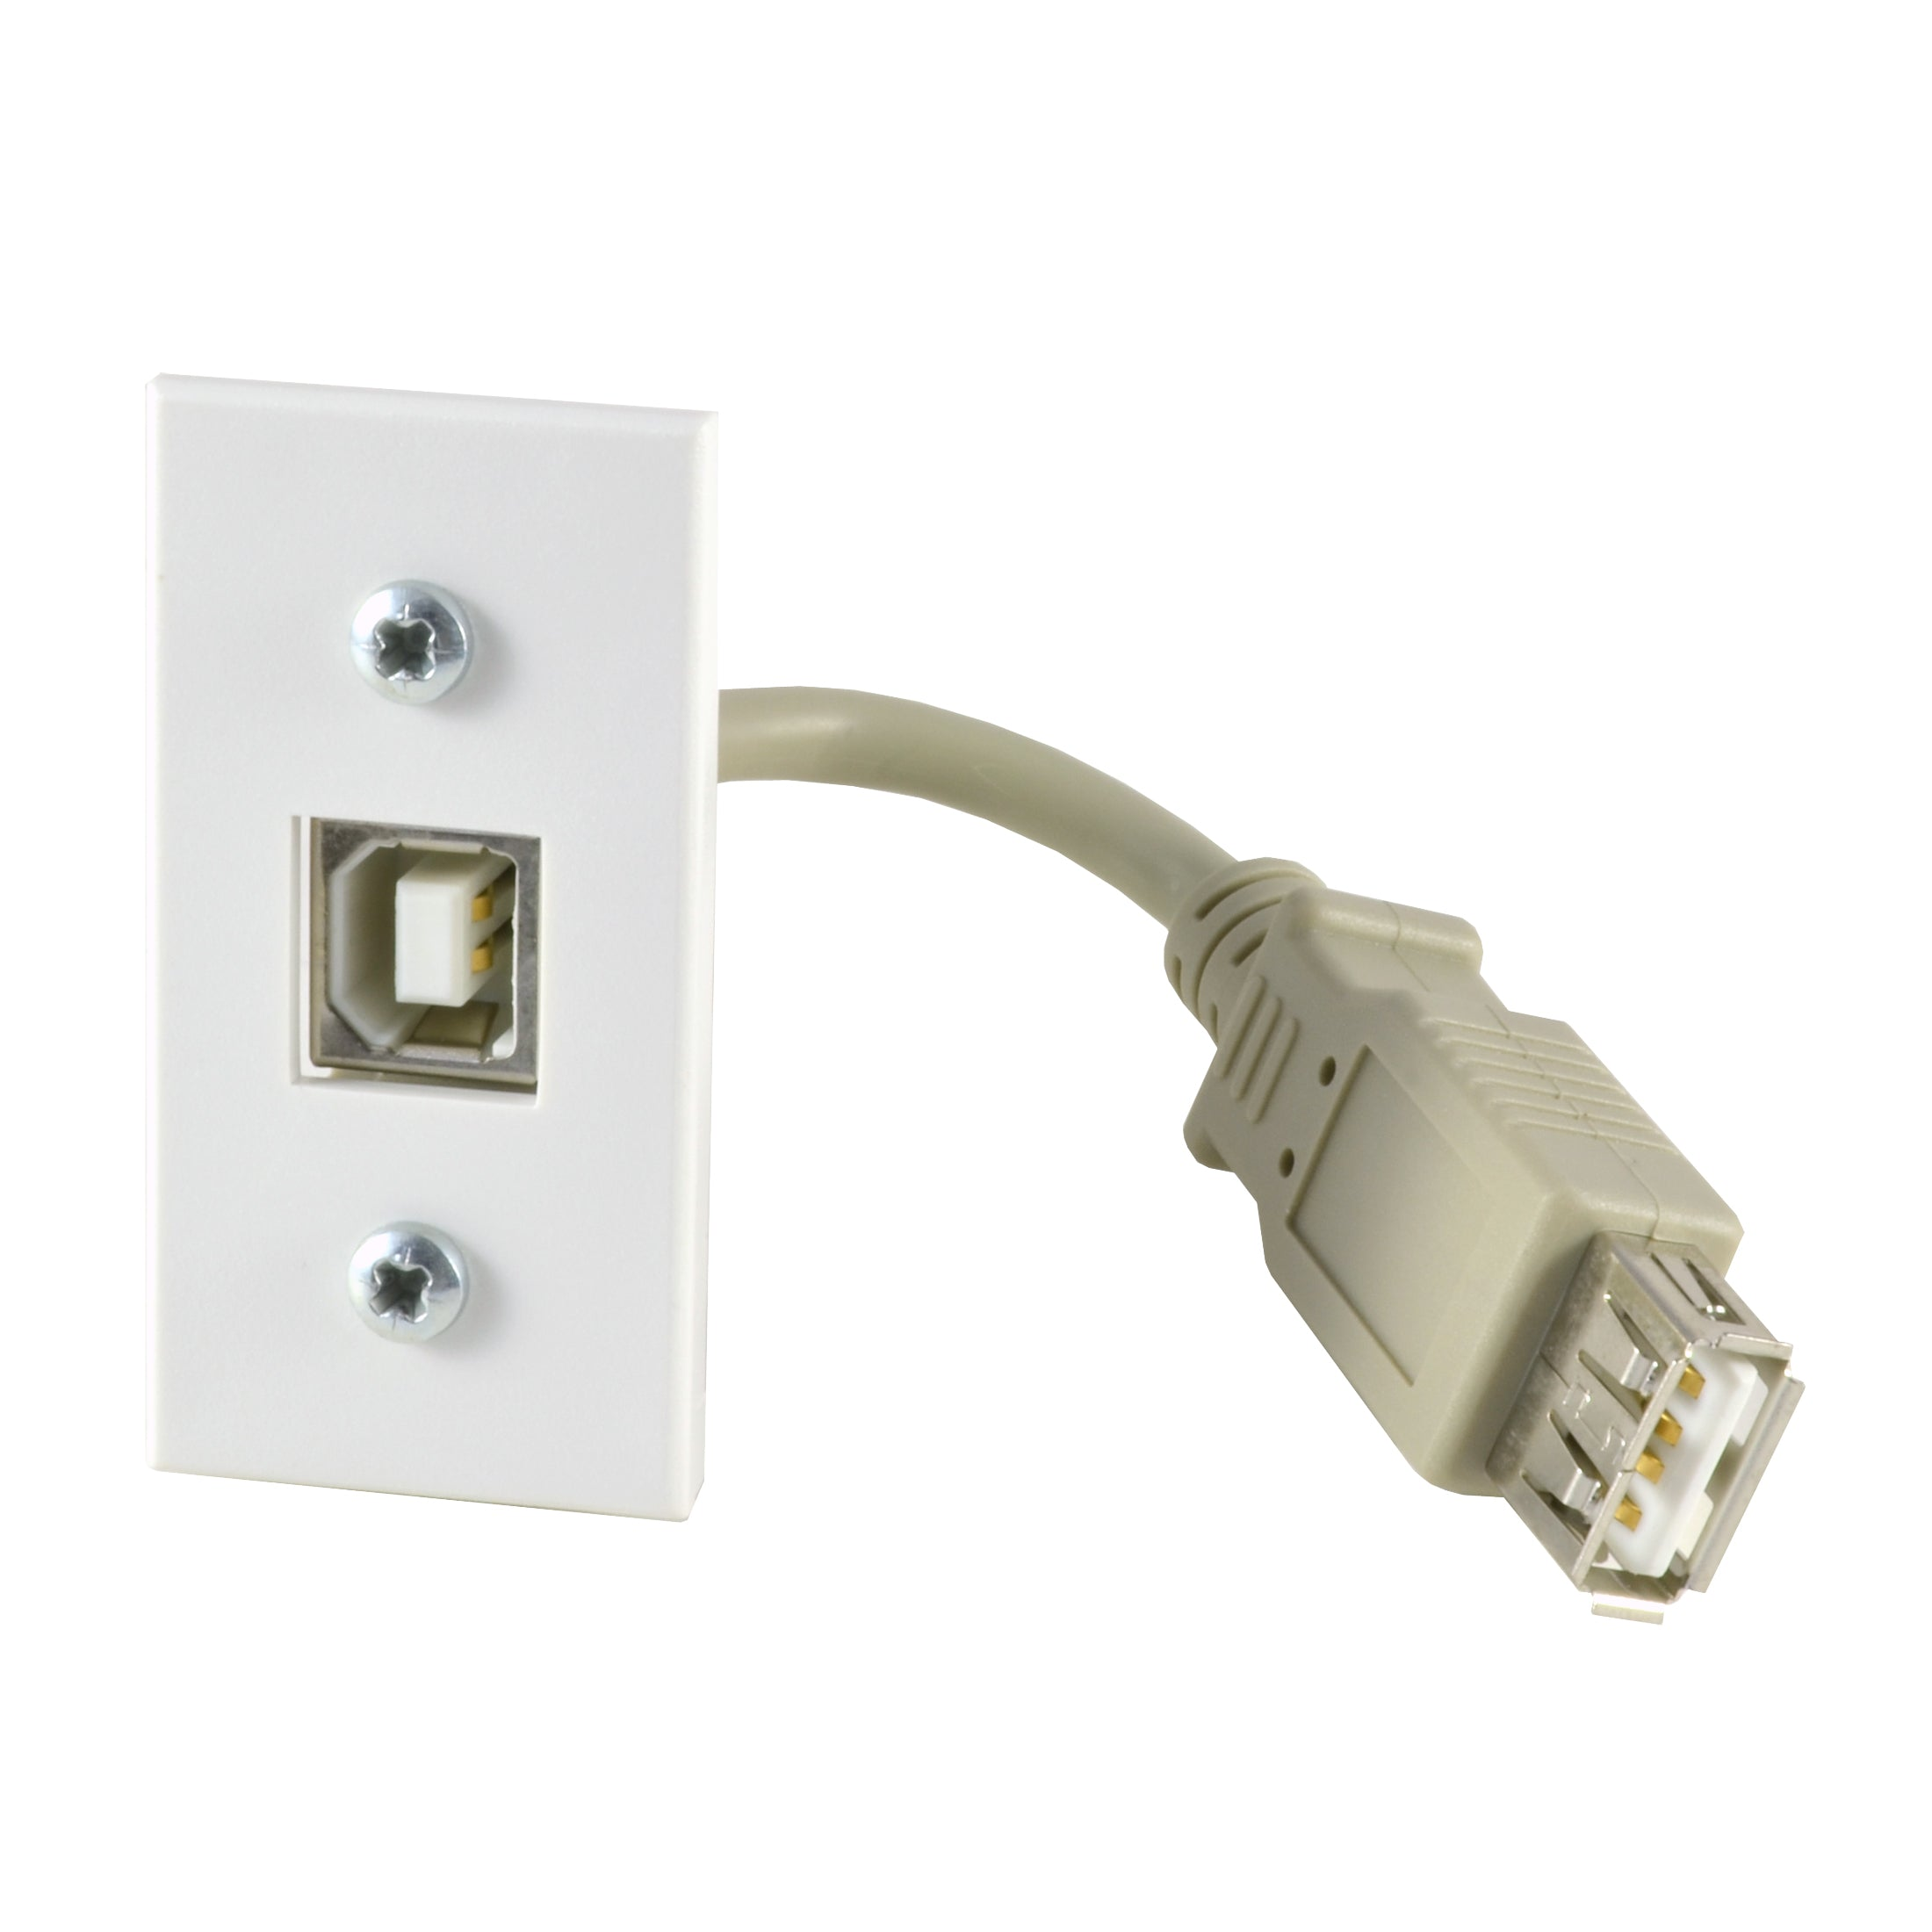 USB B module with tail white SX7016WH